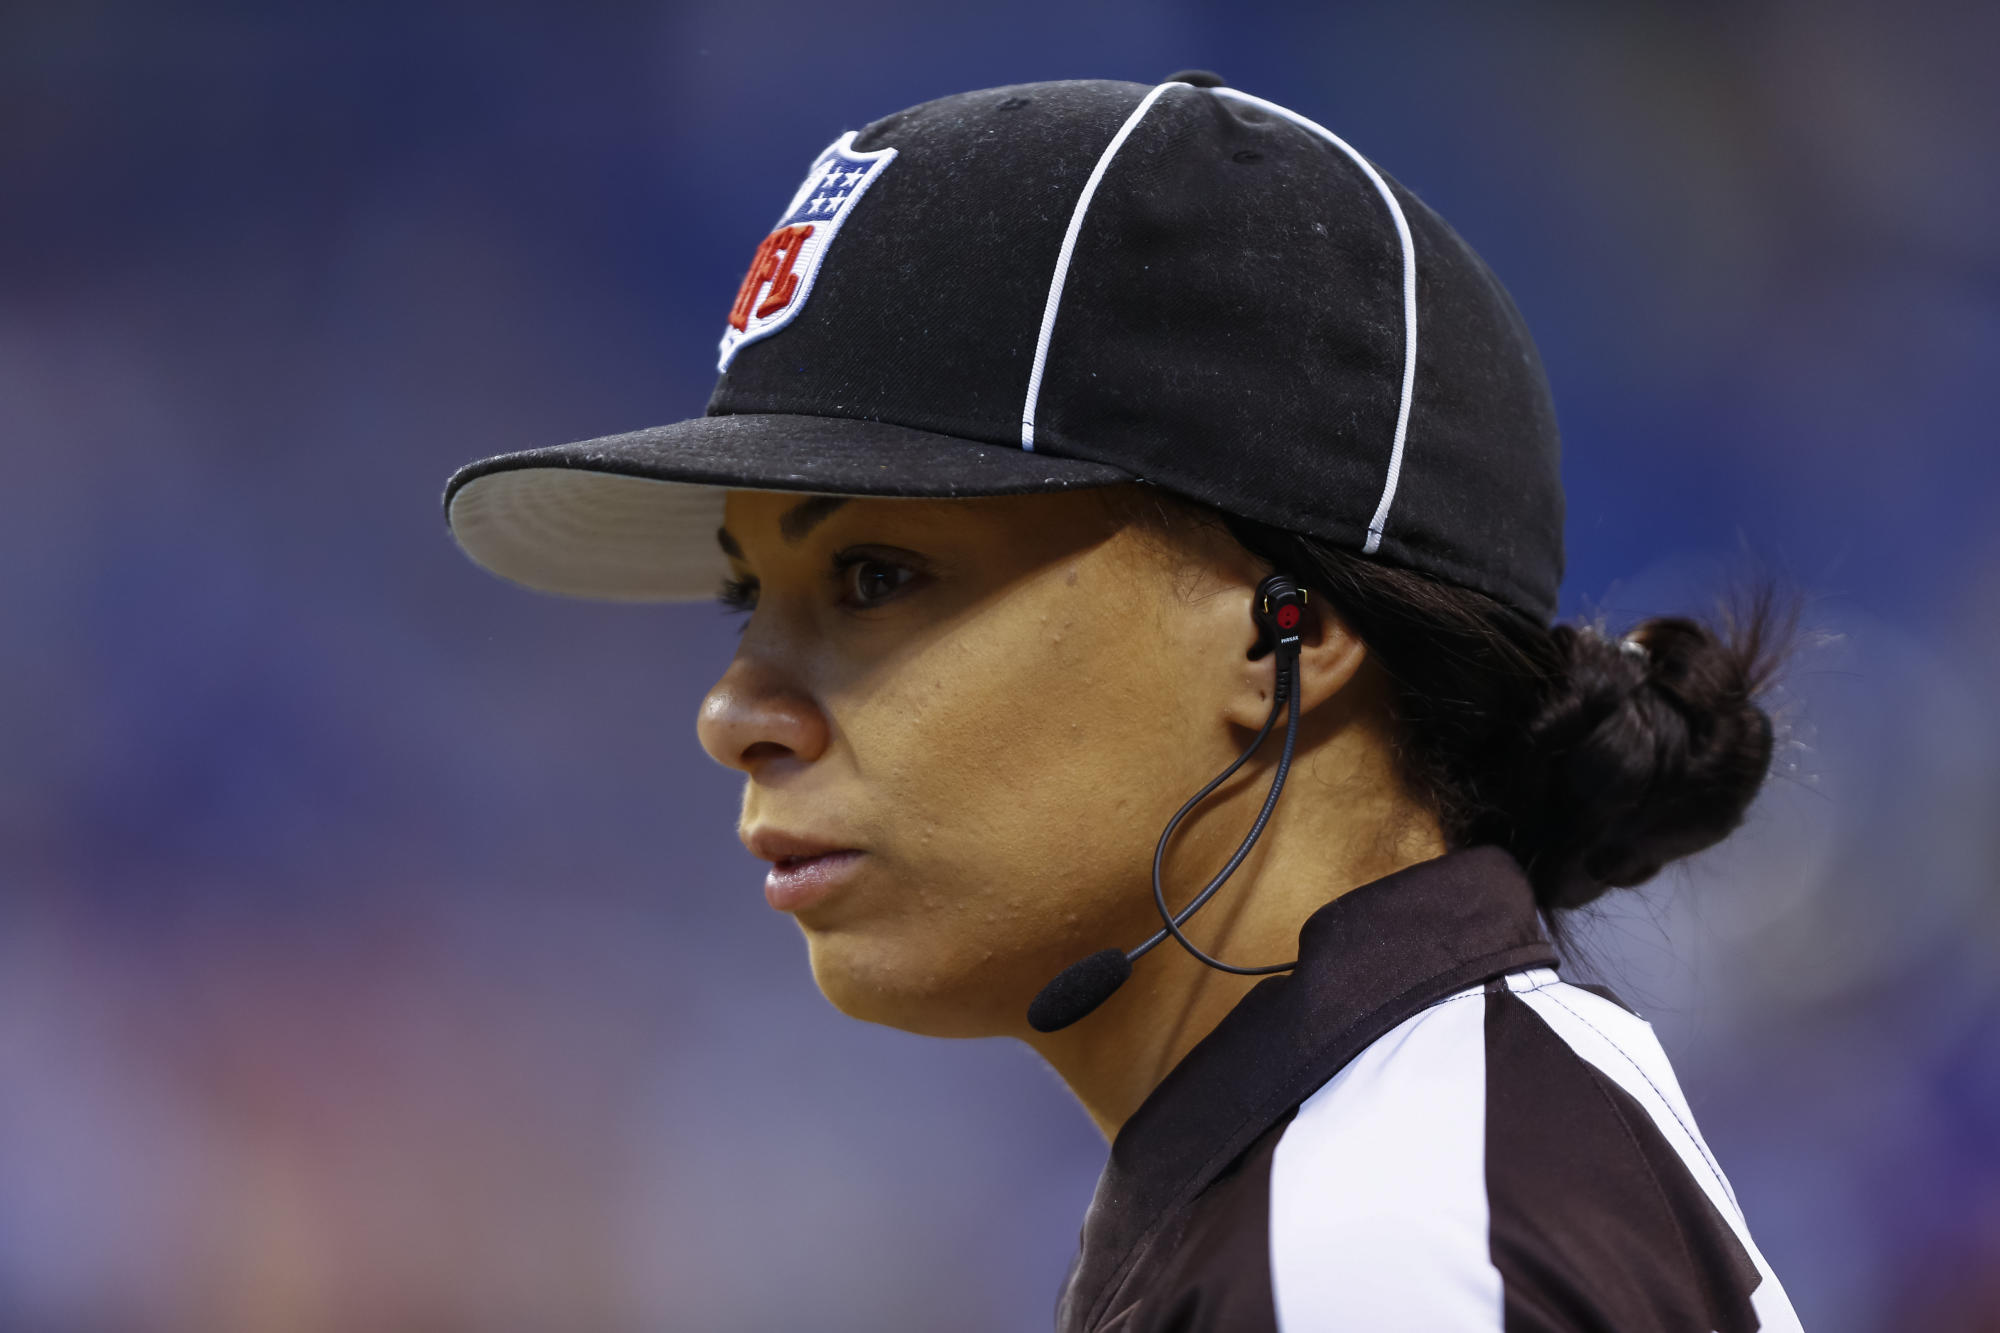 NFL names Maia Chaka to officiating crew, making her first Black female referee